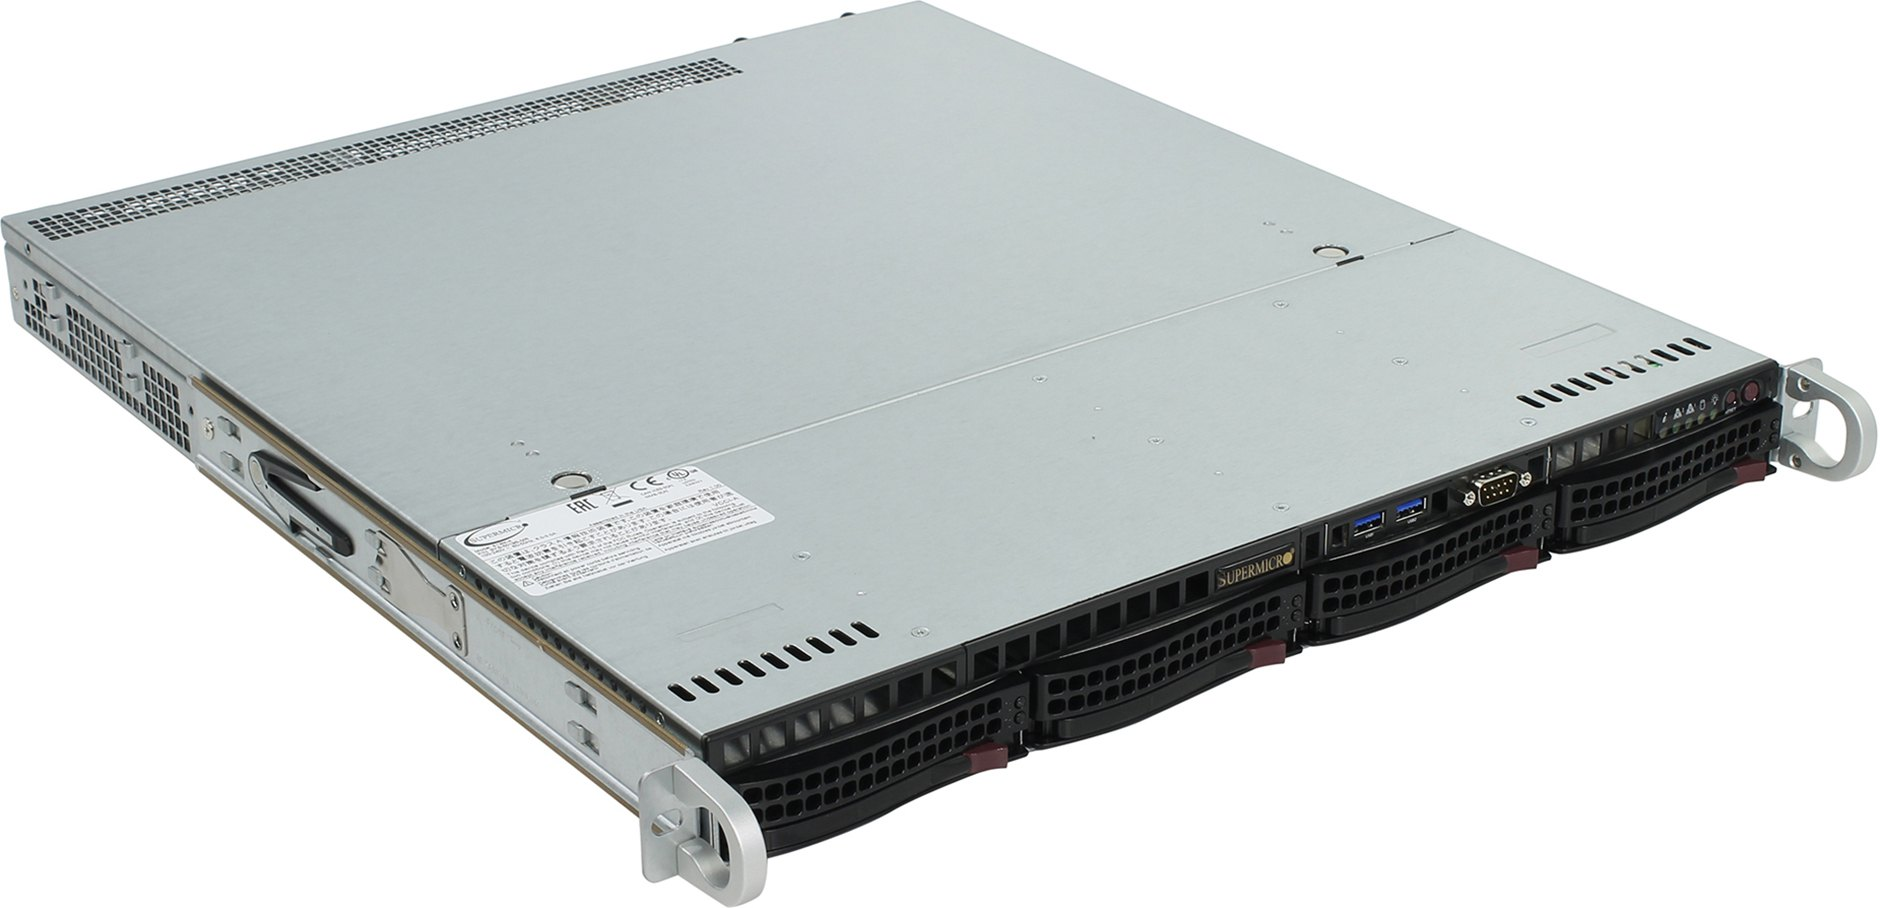 SERVER Rack 1220 0671485 1xE5-2603V4/1x8gb/2x1tb/2x400w/Windows Server 2019 Standard server 400